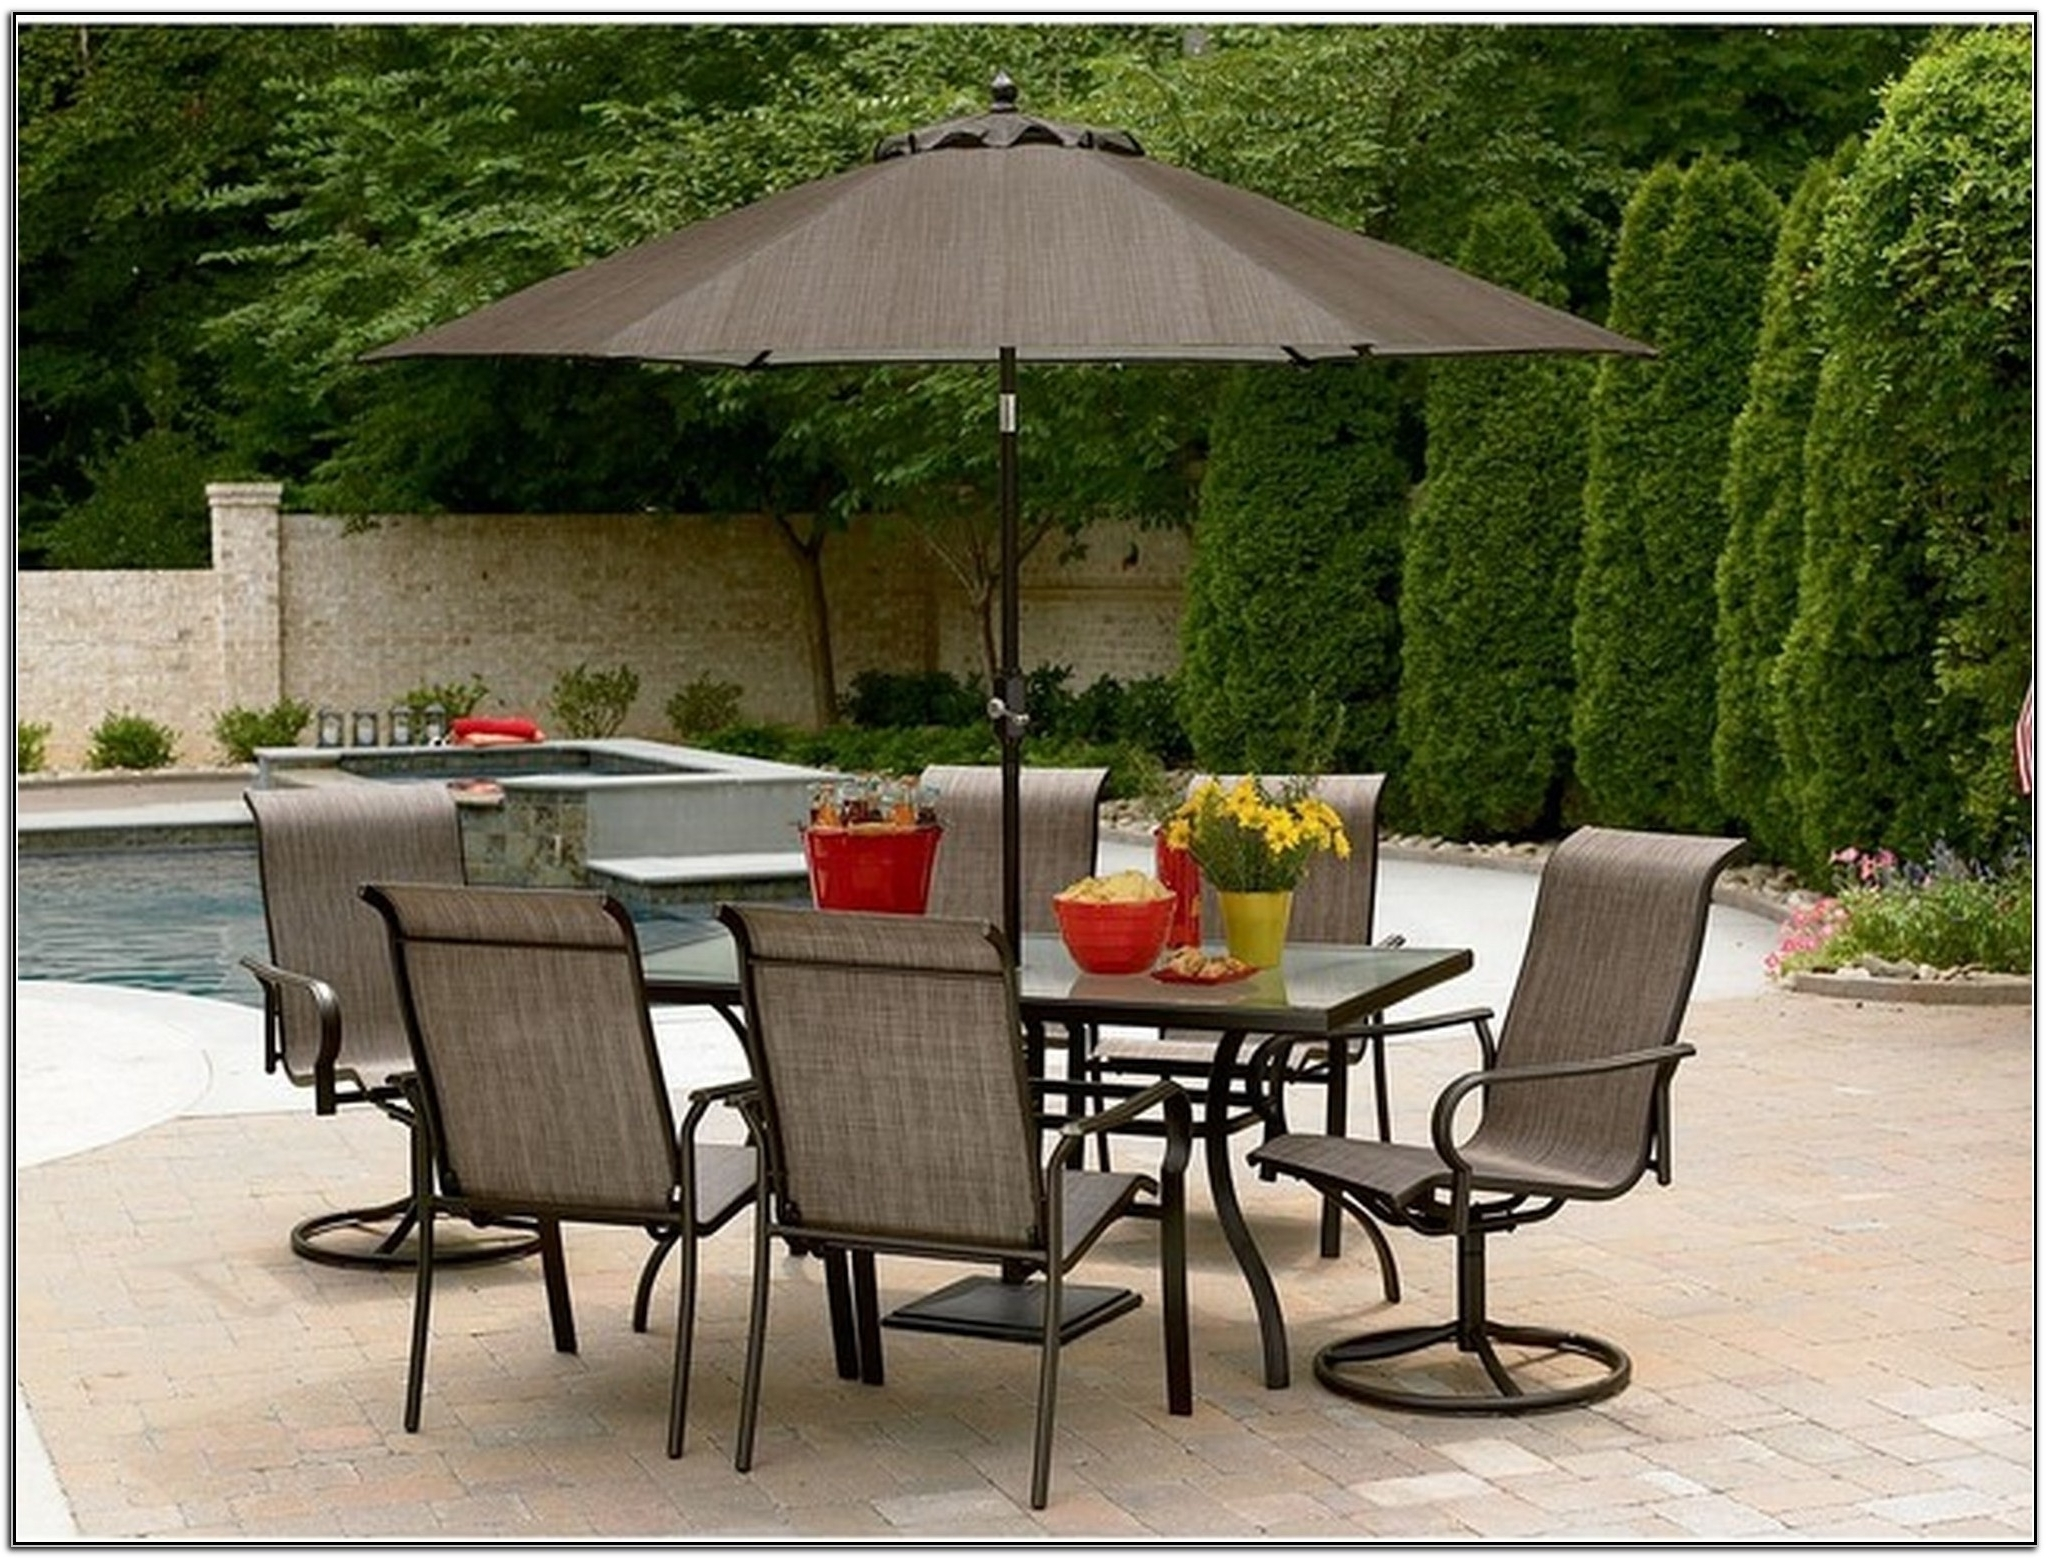 Newest 52 Sams Patio Sets, Sams Club Patio Furniture Seputarindonesacom Regarding Patio Conversation Sets At Sam's Club (Gallery 19 of 20)